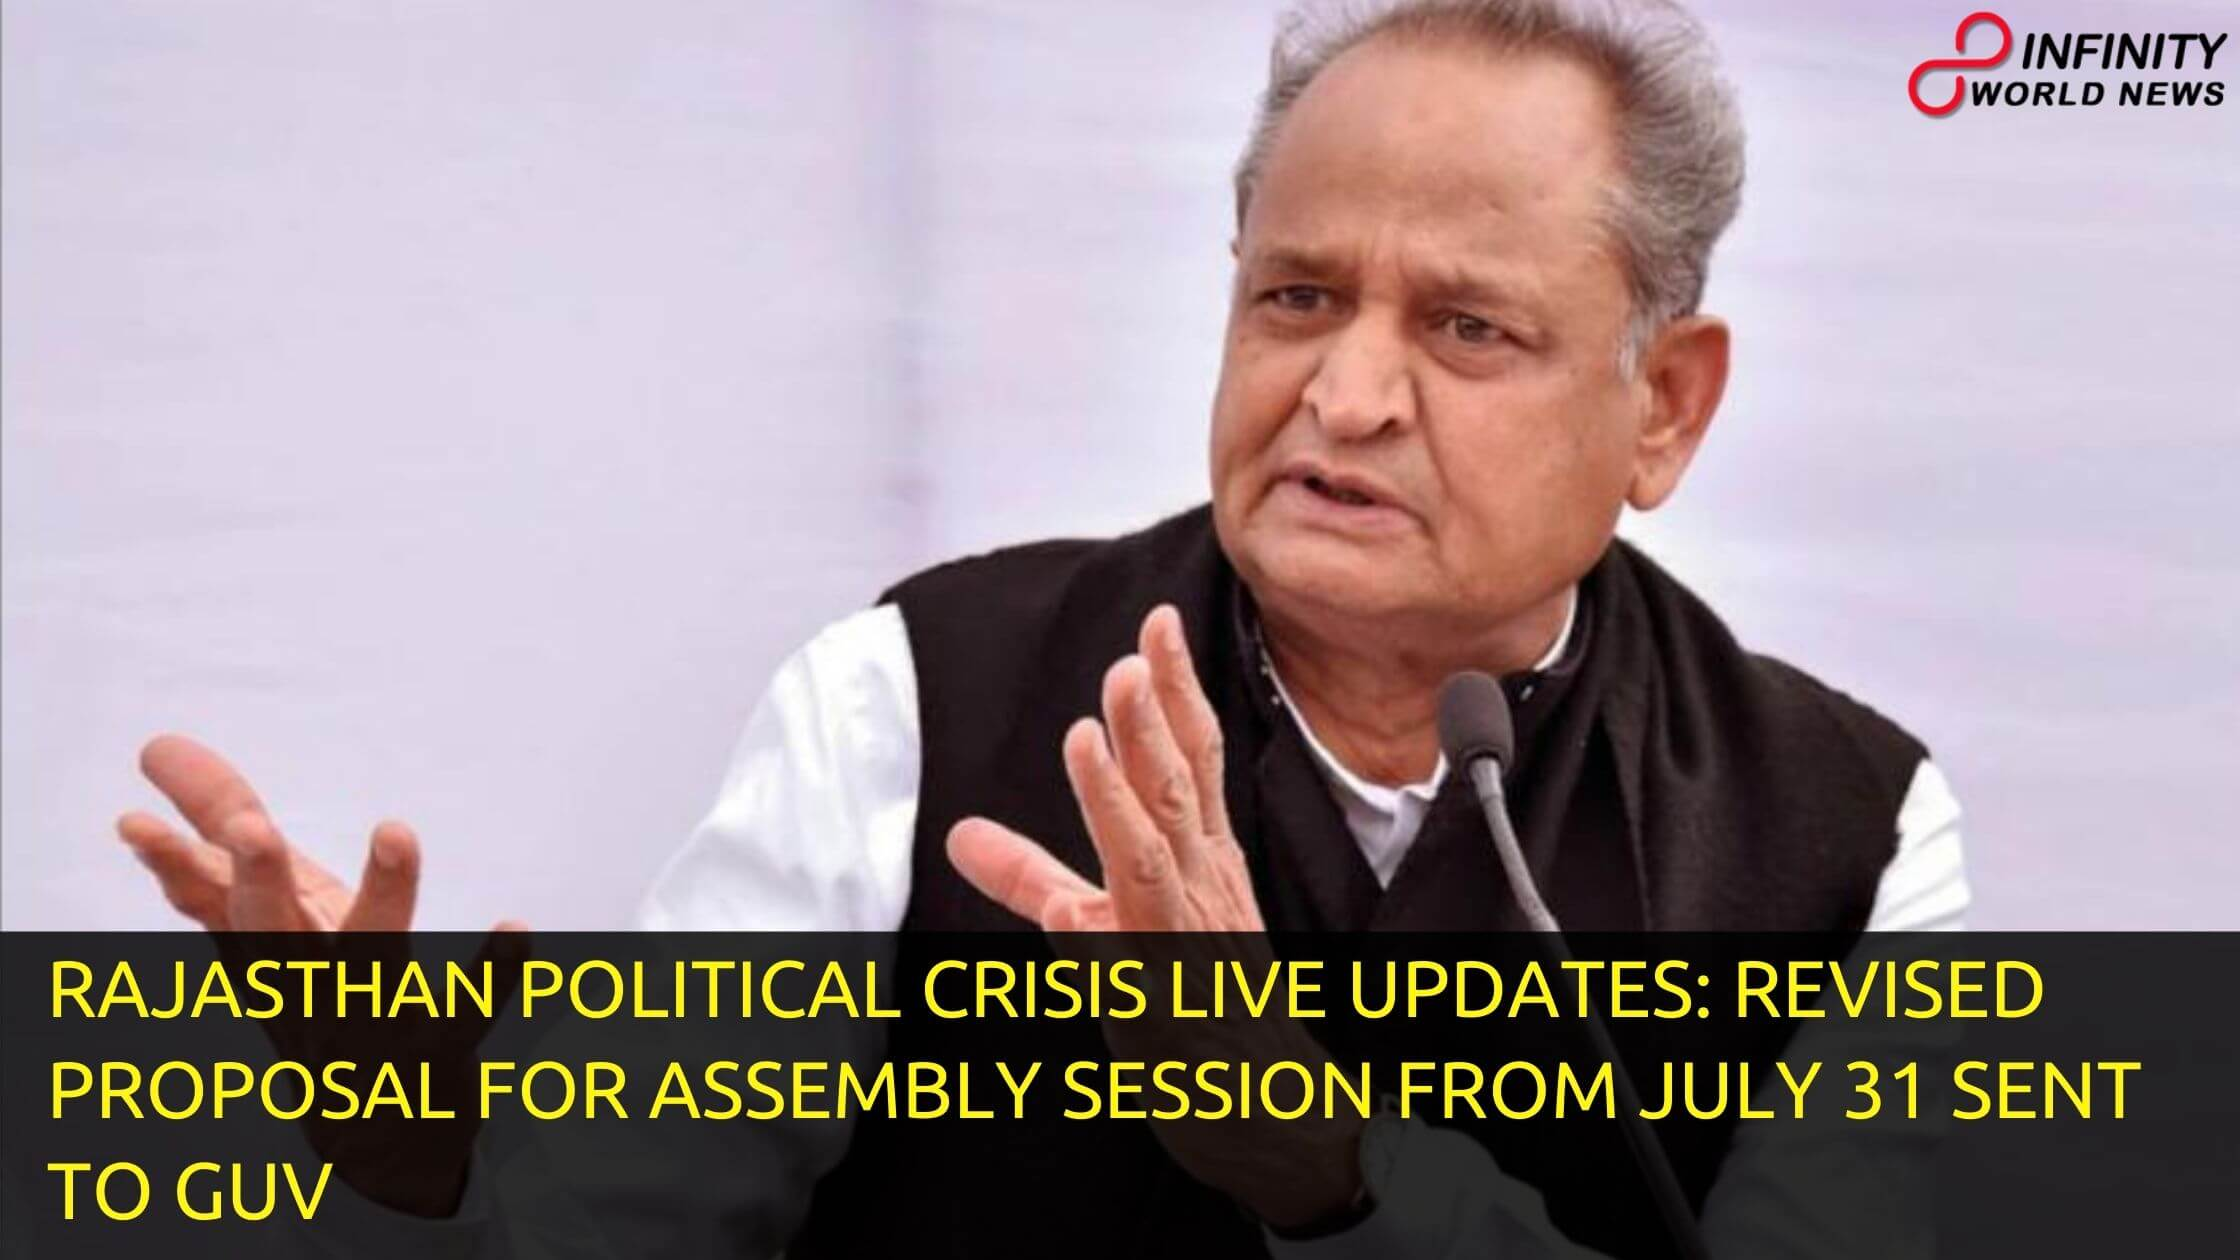 Rajasthan Political Crisis LIVE Updates: Revised Proposal for Assembly Session from July 31 Sent to Guv